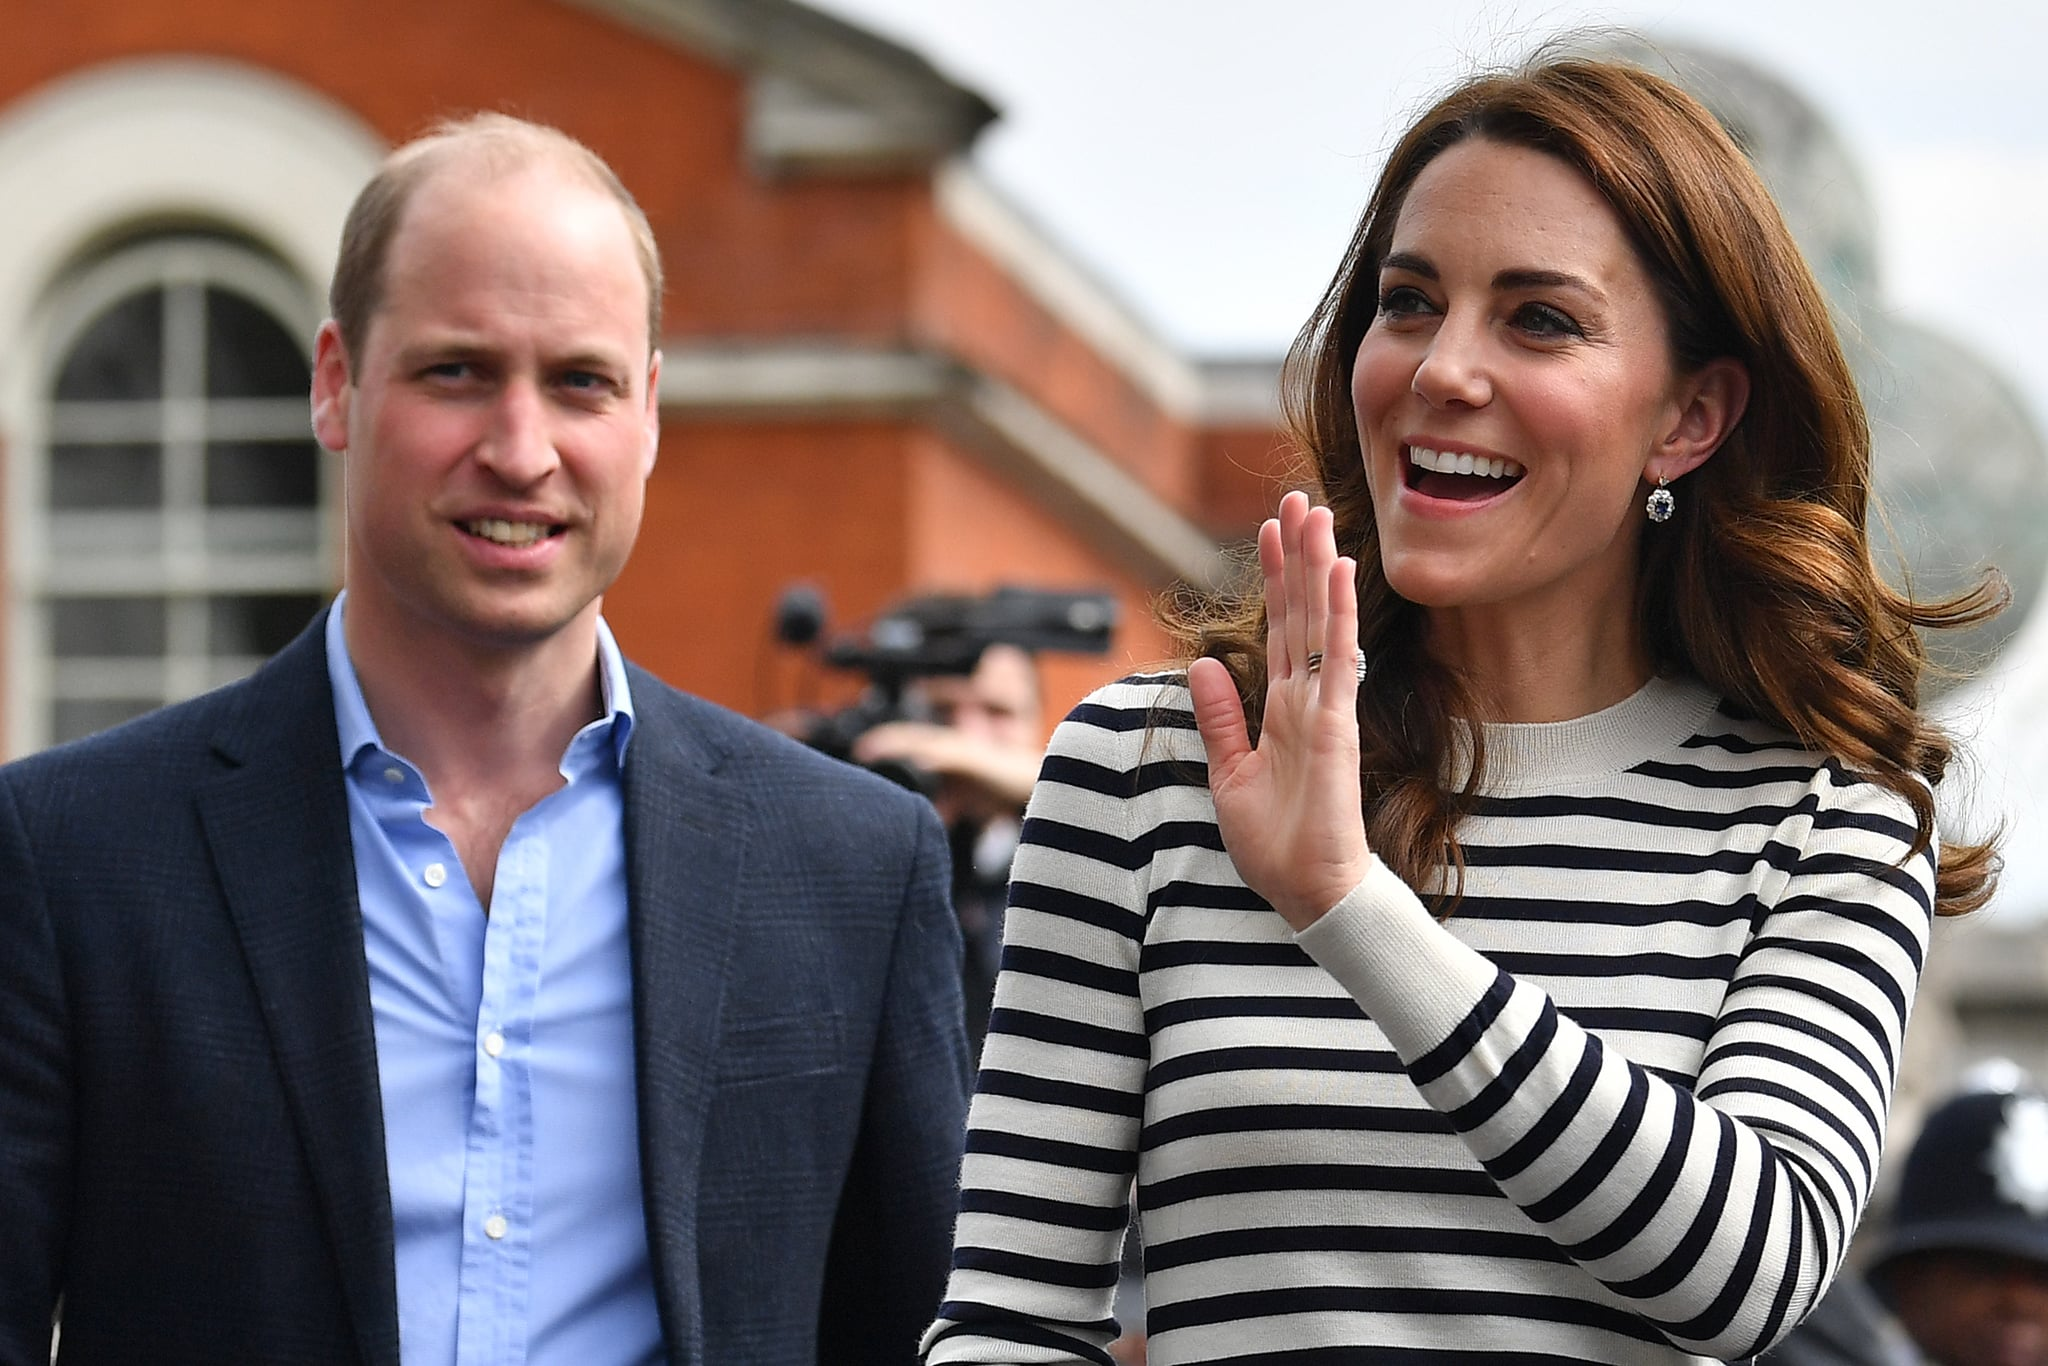 LONDON, ENGLAND - MAY 07: Catherine, Duchess of Cambridge and Prince William, Duke of Cambridge wave to well wishers as they leave after attending the launch of the King's Cup Regatta at Cutty Sark, Greenwich on May 7, 2019 in London, England. (Photo by Ben Stansall - WPA Pool / Getty Images)